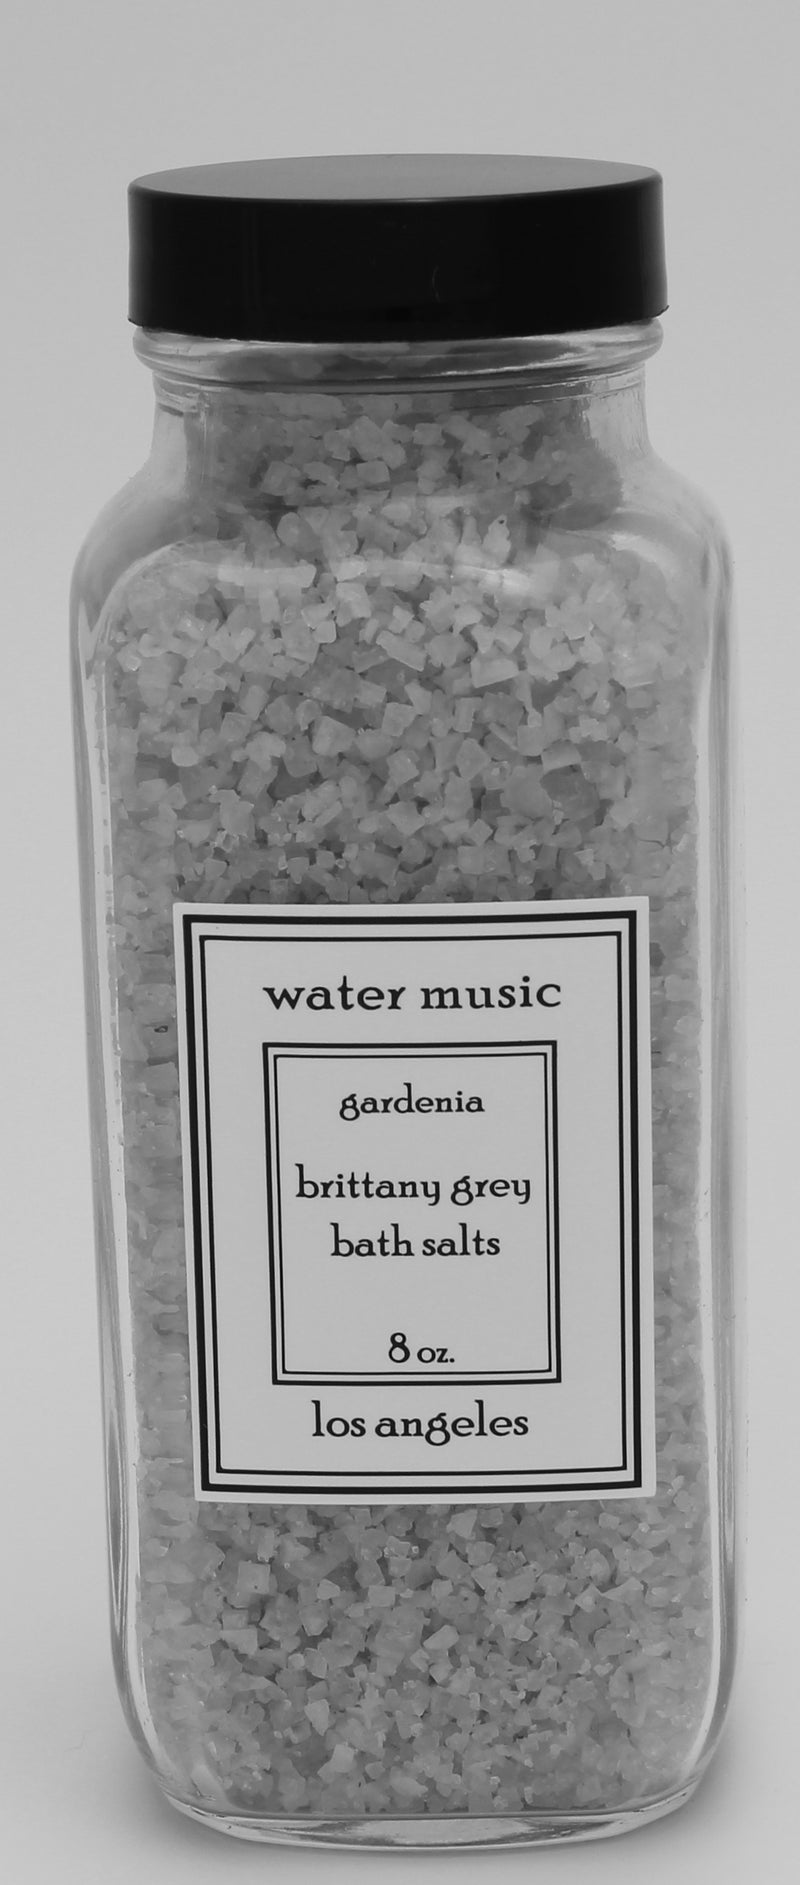 bath salt - brittany grey